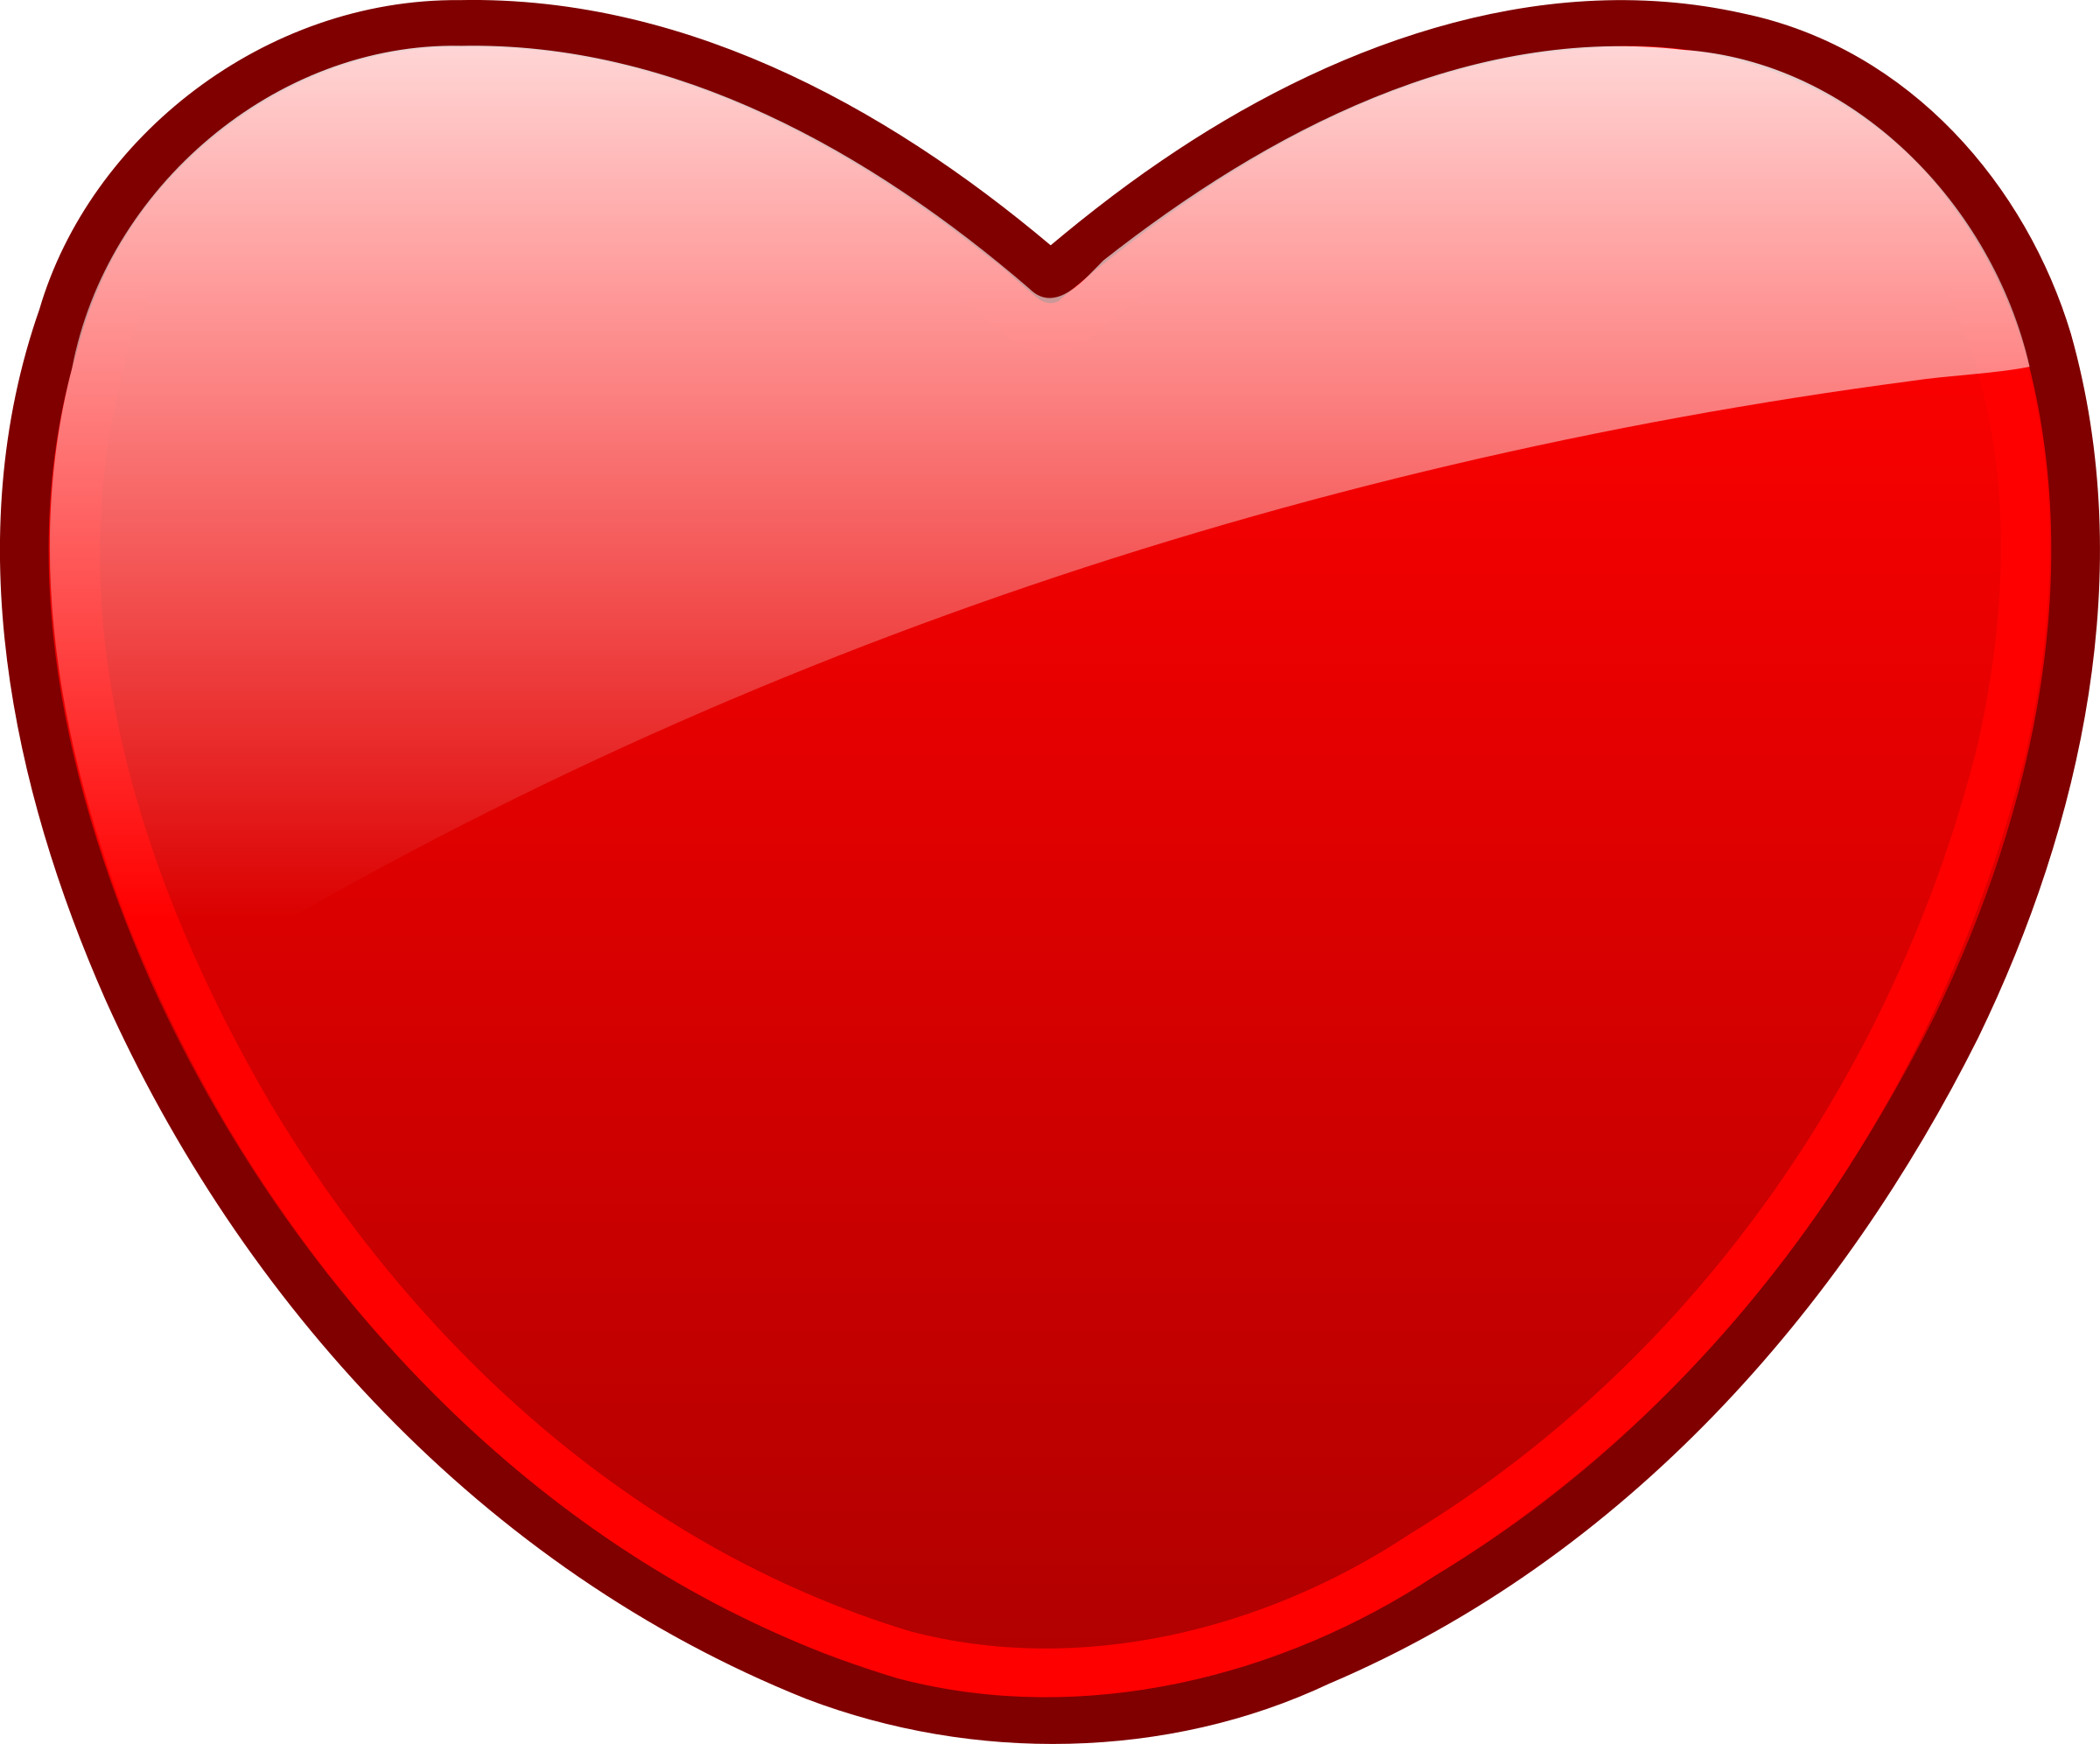 Free open heart icon. Heartbeat clipart red